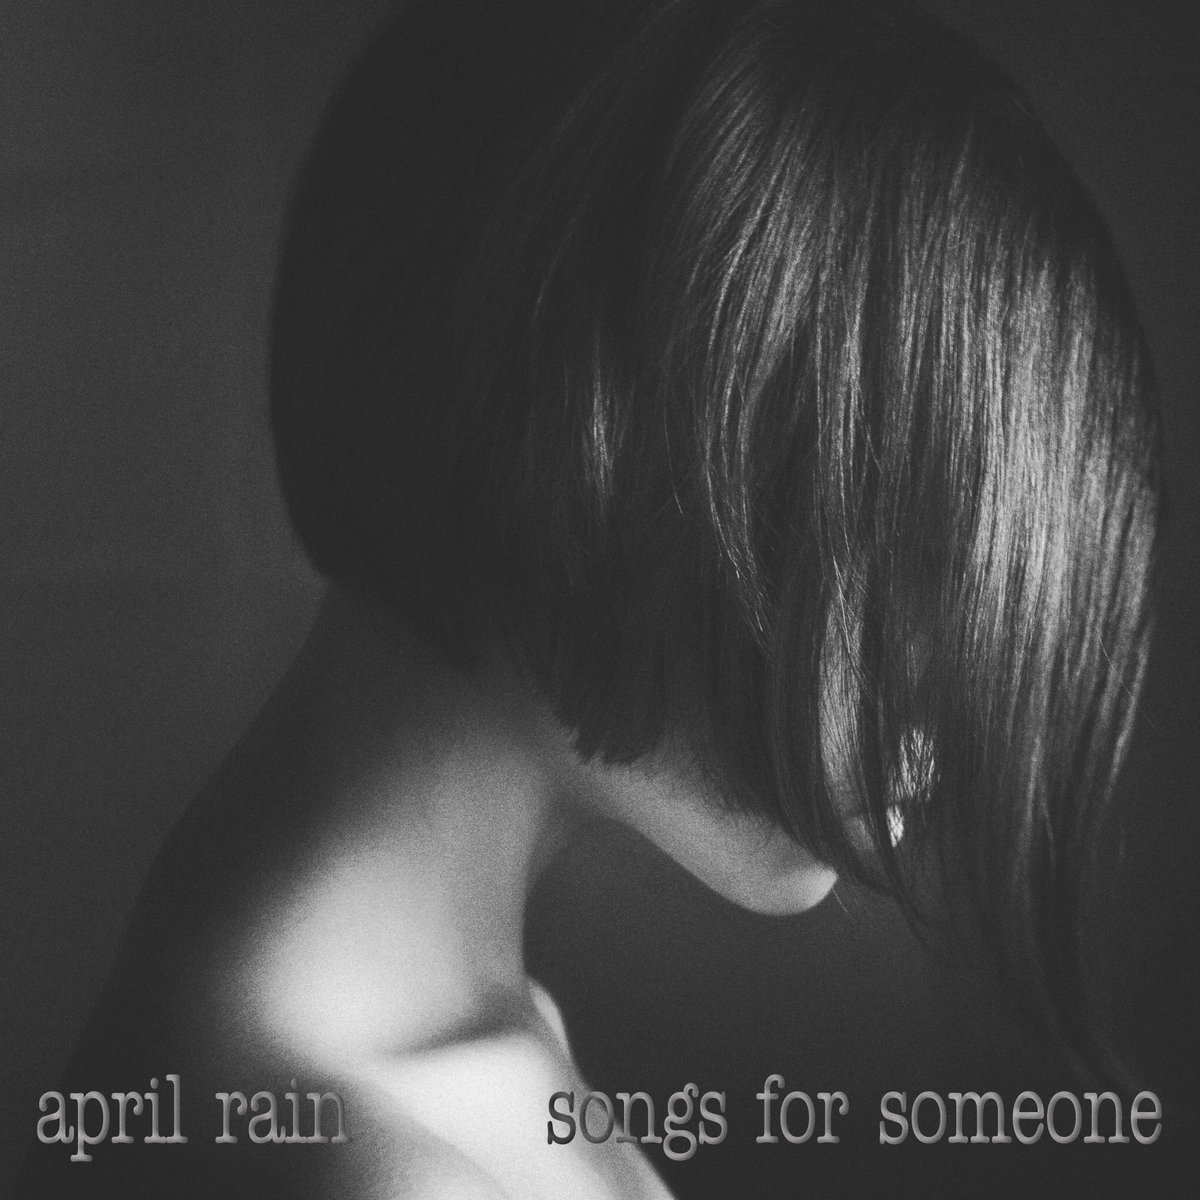 A song for missing someone